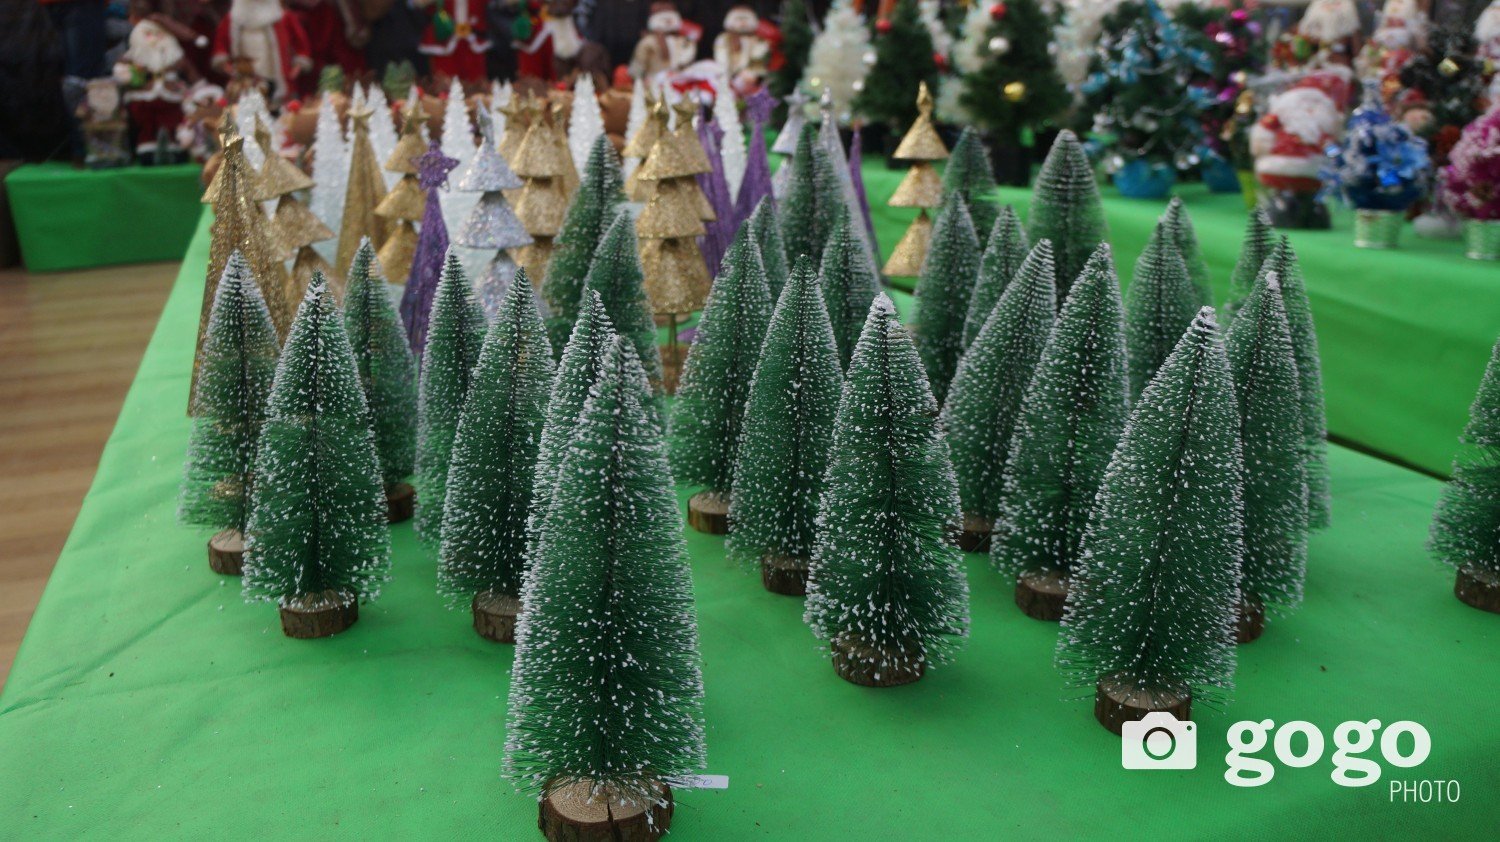 Prices for new mini desk top artificial Christmas tree is ranging between MNT 5600-59.000